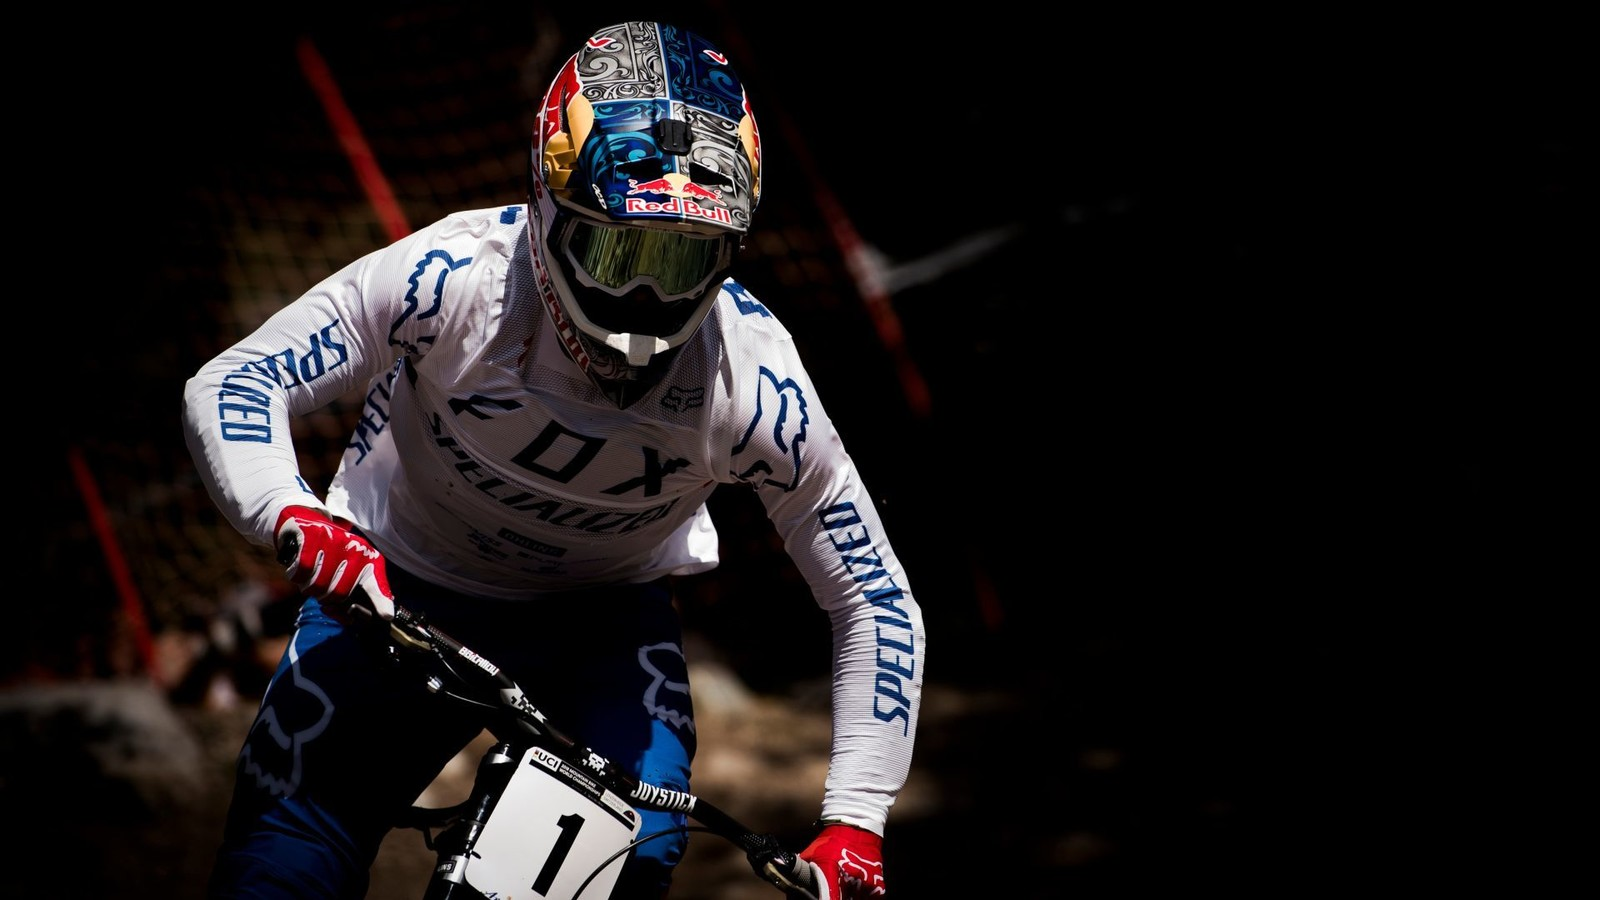 2019 Mercedes-Benz UCI MTB World Cup Continues Live Broadcasts on Red Bull TV